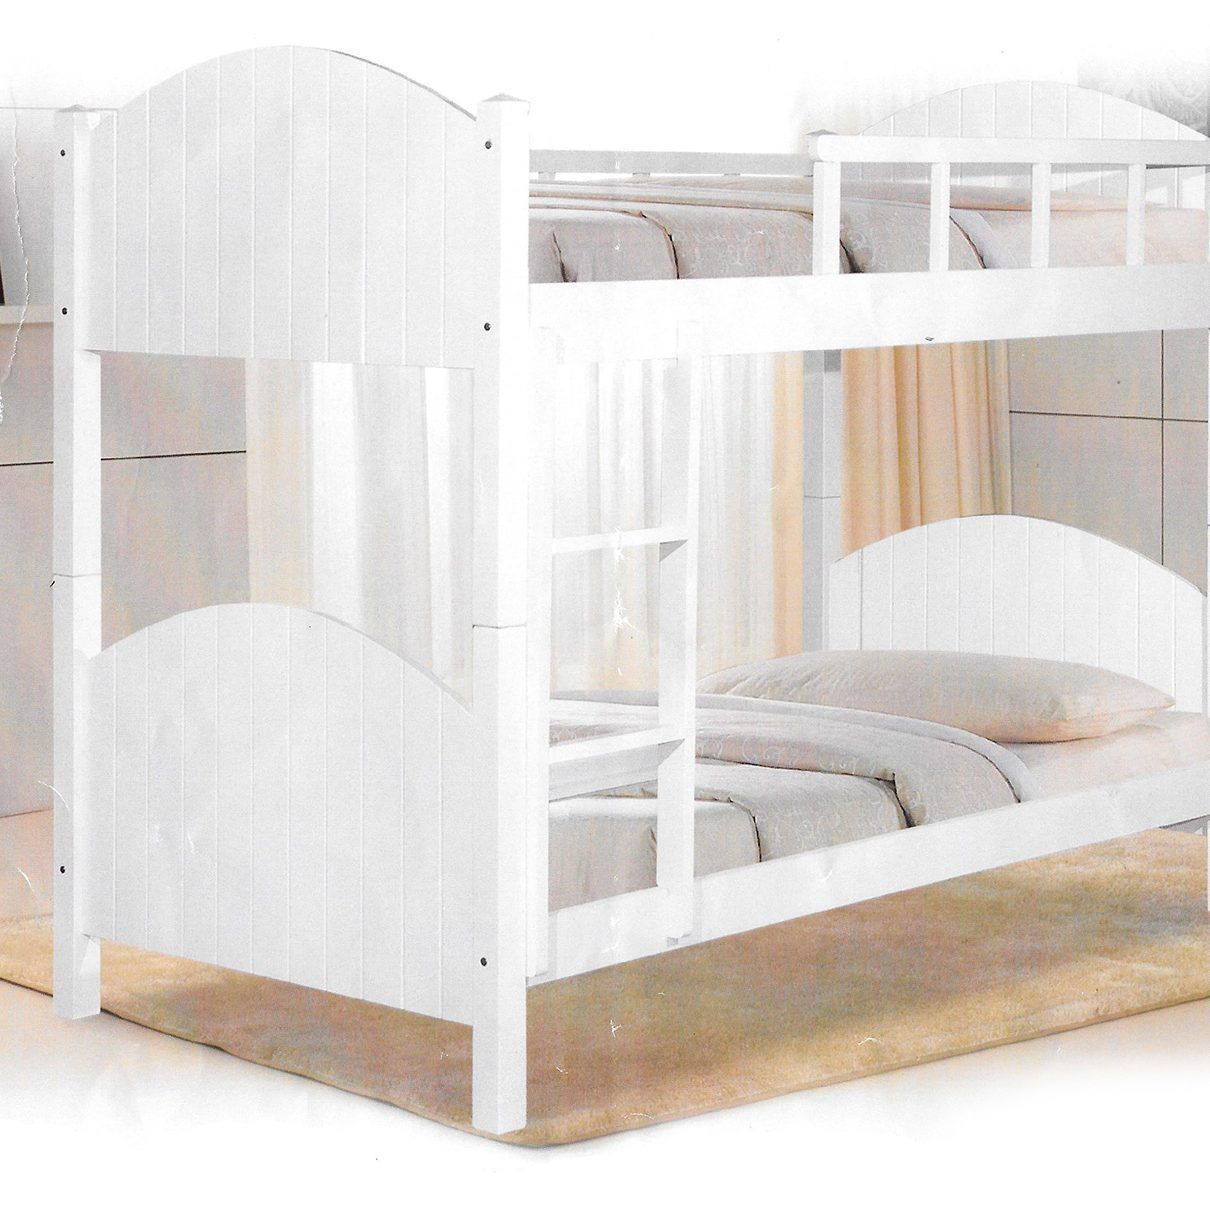 Double Decker Bed-Atop ATN-7213